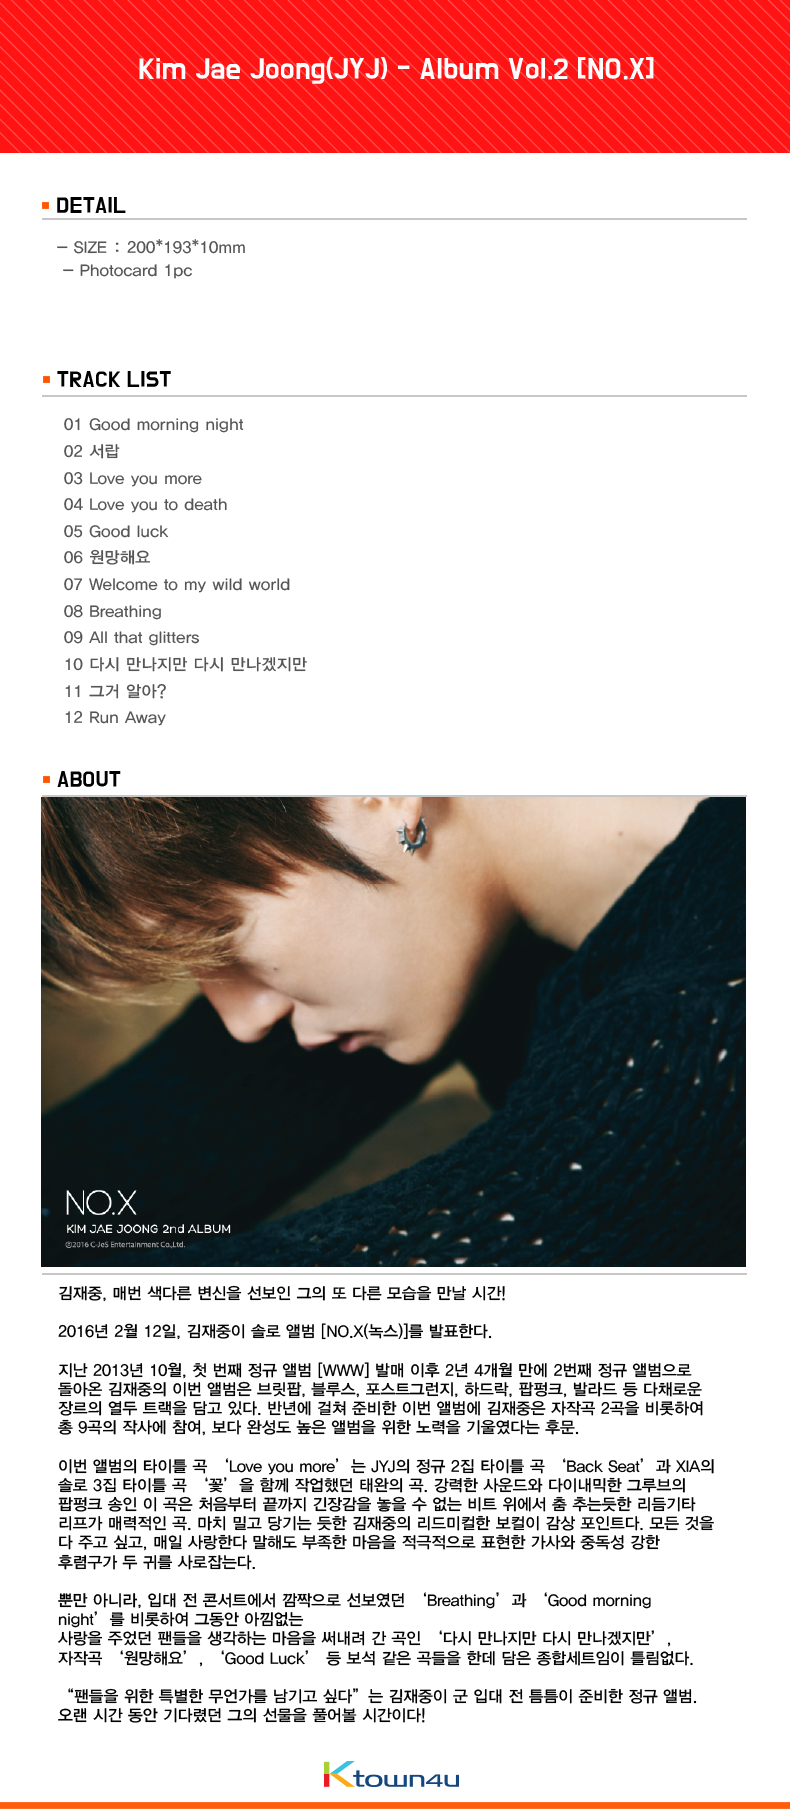 [ジェイワイジェイ] Kim Jae Joong(JYJ) - Album Vol.2 [NO.X]